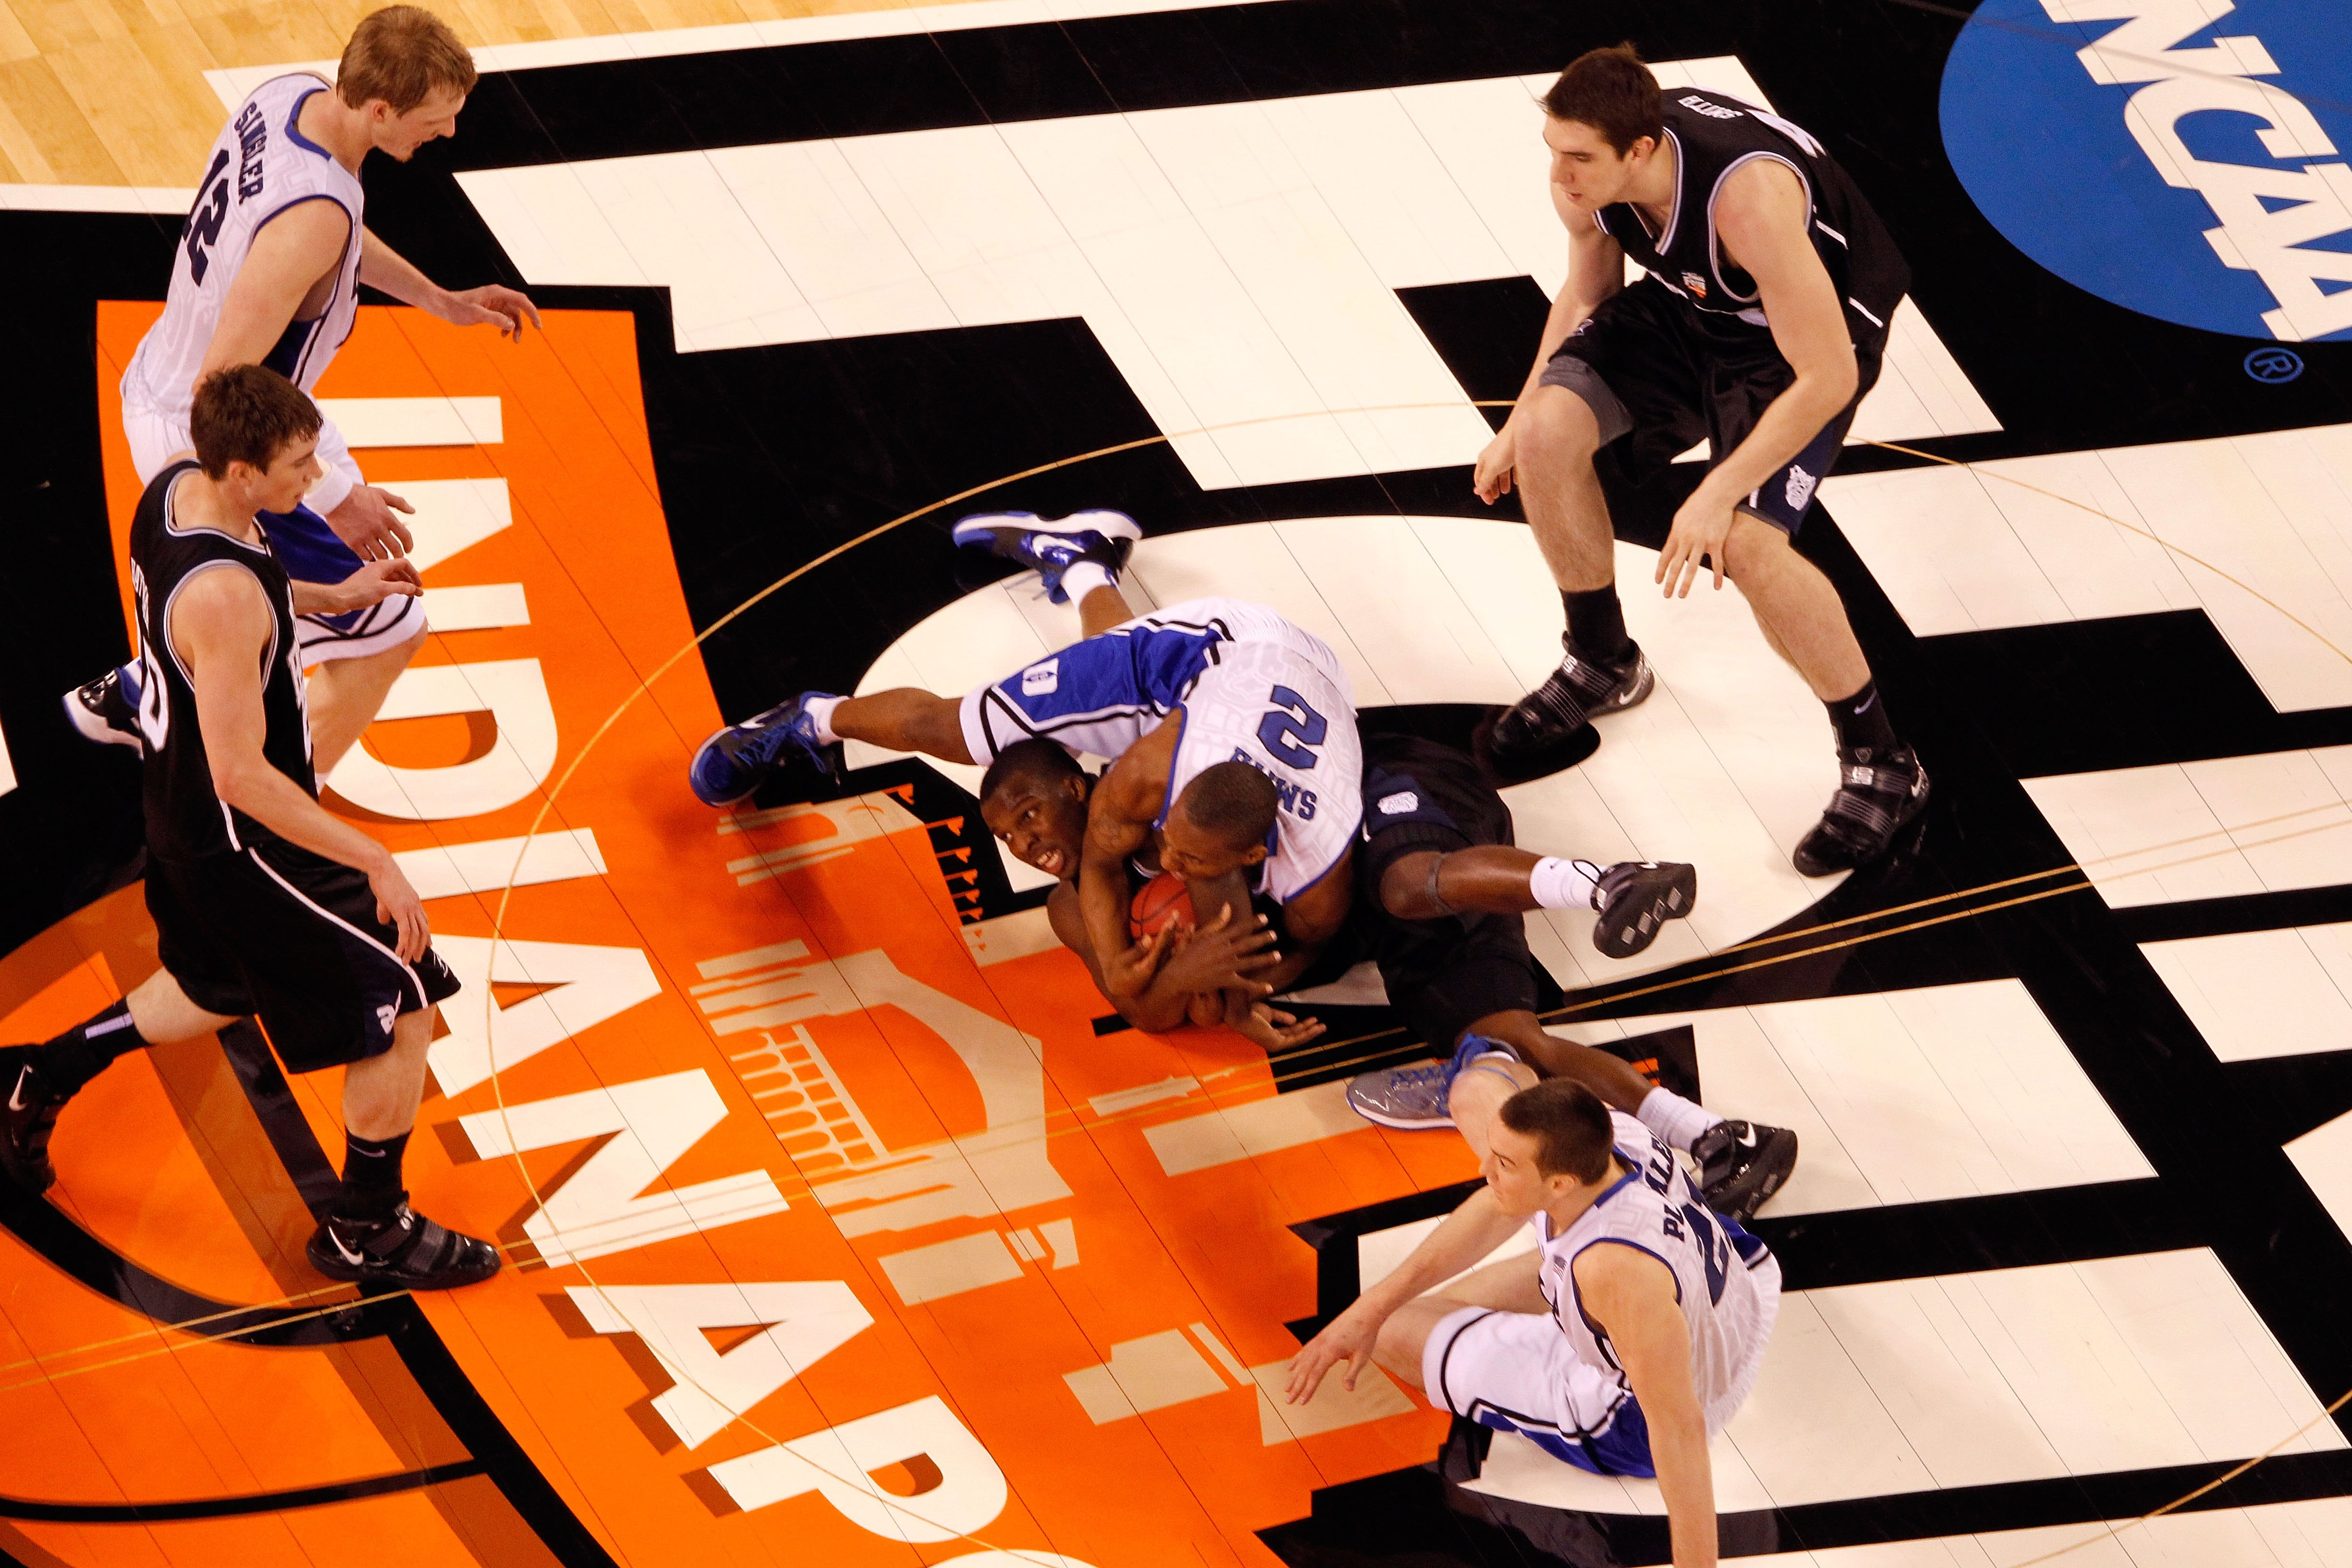 INDIANAPOLIS - APRIL 05:  Shelvin Mack #1 of the Butler Bulldogs attempts to control the ball against Nolan Smith #2 of the Duke Blue Devils during the 2010 NCAA Division I Men's Basketball National Championship game at Lucas Oil Stadium on April 5, 2010